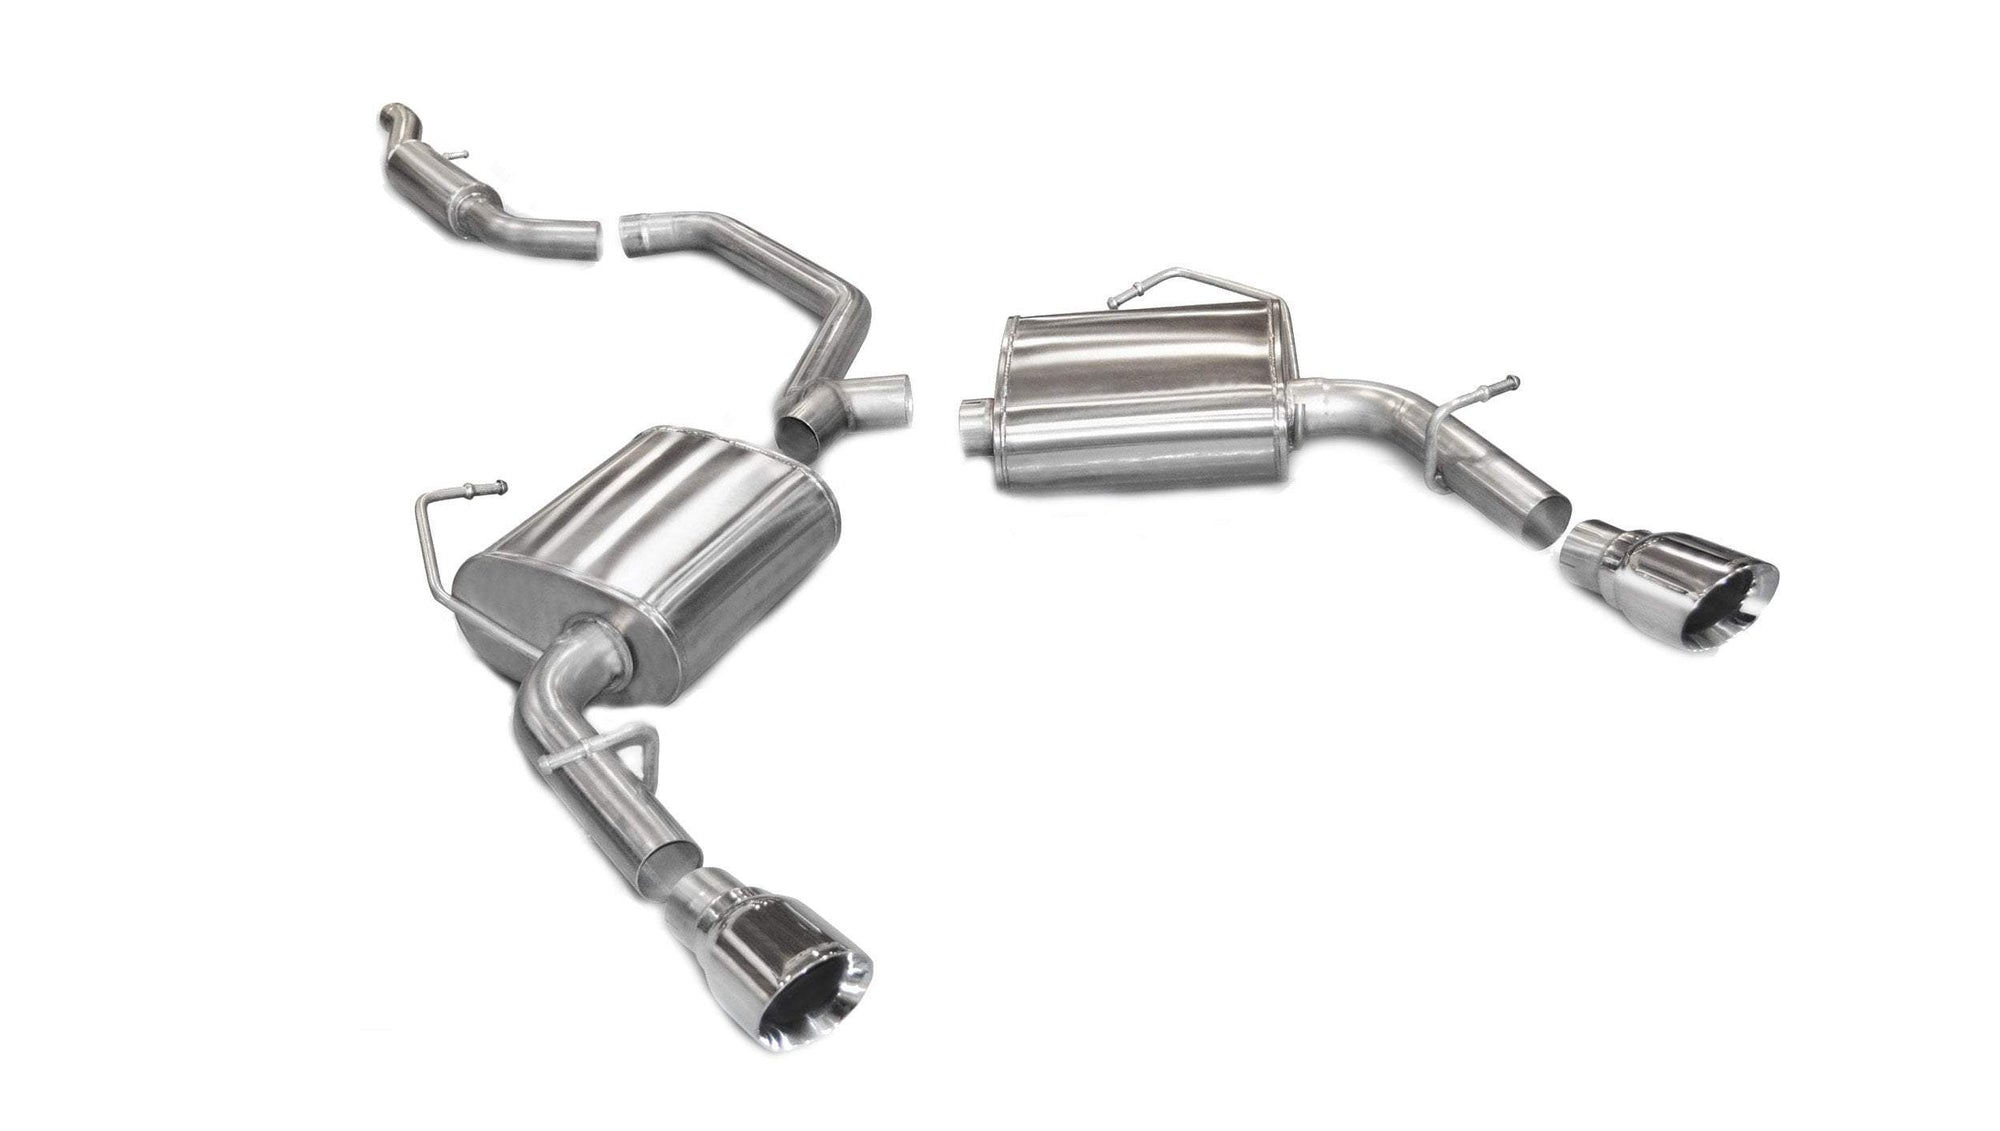 "CORSA PERFORMANCE Cat-Back Exhaust Polished / Sport / Dual Rear - Single 4in 2.5"" Dual Rear Exit Cat-Back Exhaust System with Single 4.0"" Tips (14413) Sport Sound Level"